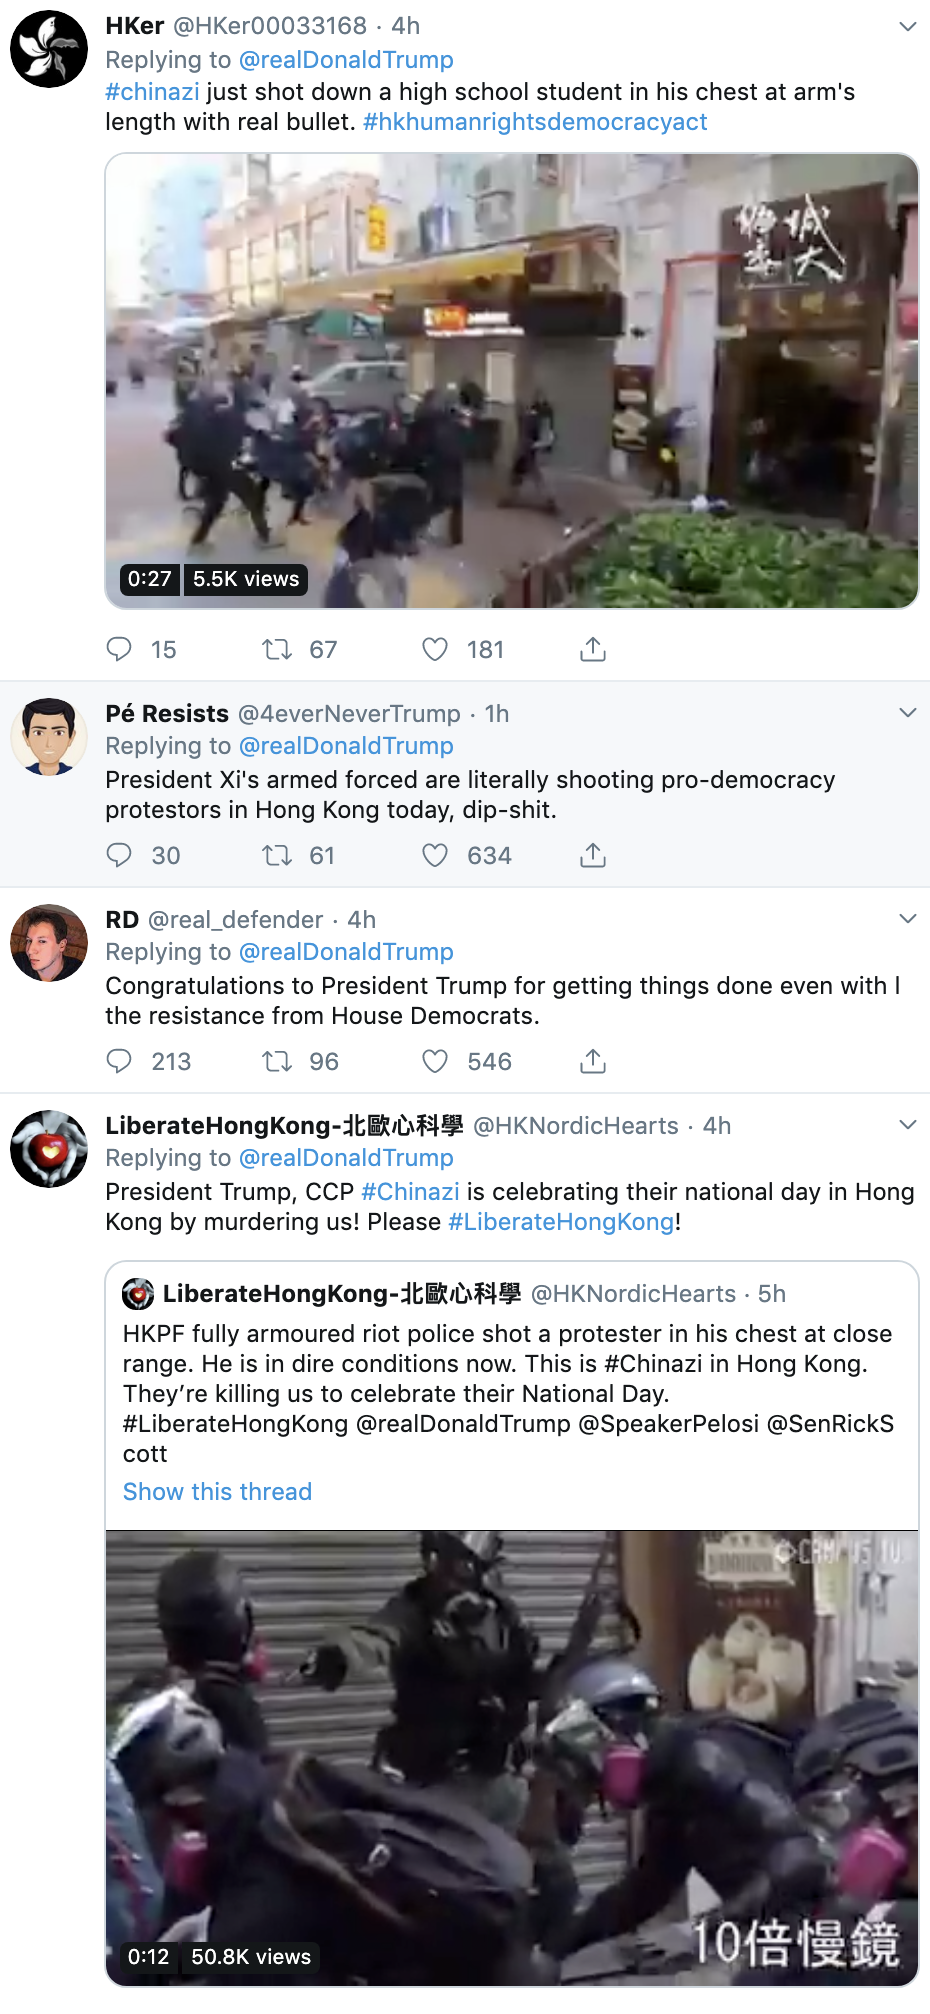 92aa24ba-screen-shot-2019-10-01-at-10.06.54-am Trump Sends Congrats To Communist, Torturing, Murderous Dictator Corruption Crime Donald Trump Economy Election 2020 Featured History Military Politics Protest Top Stories